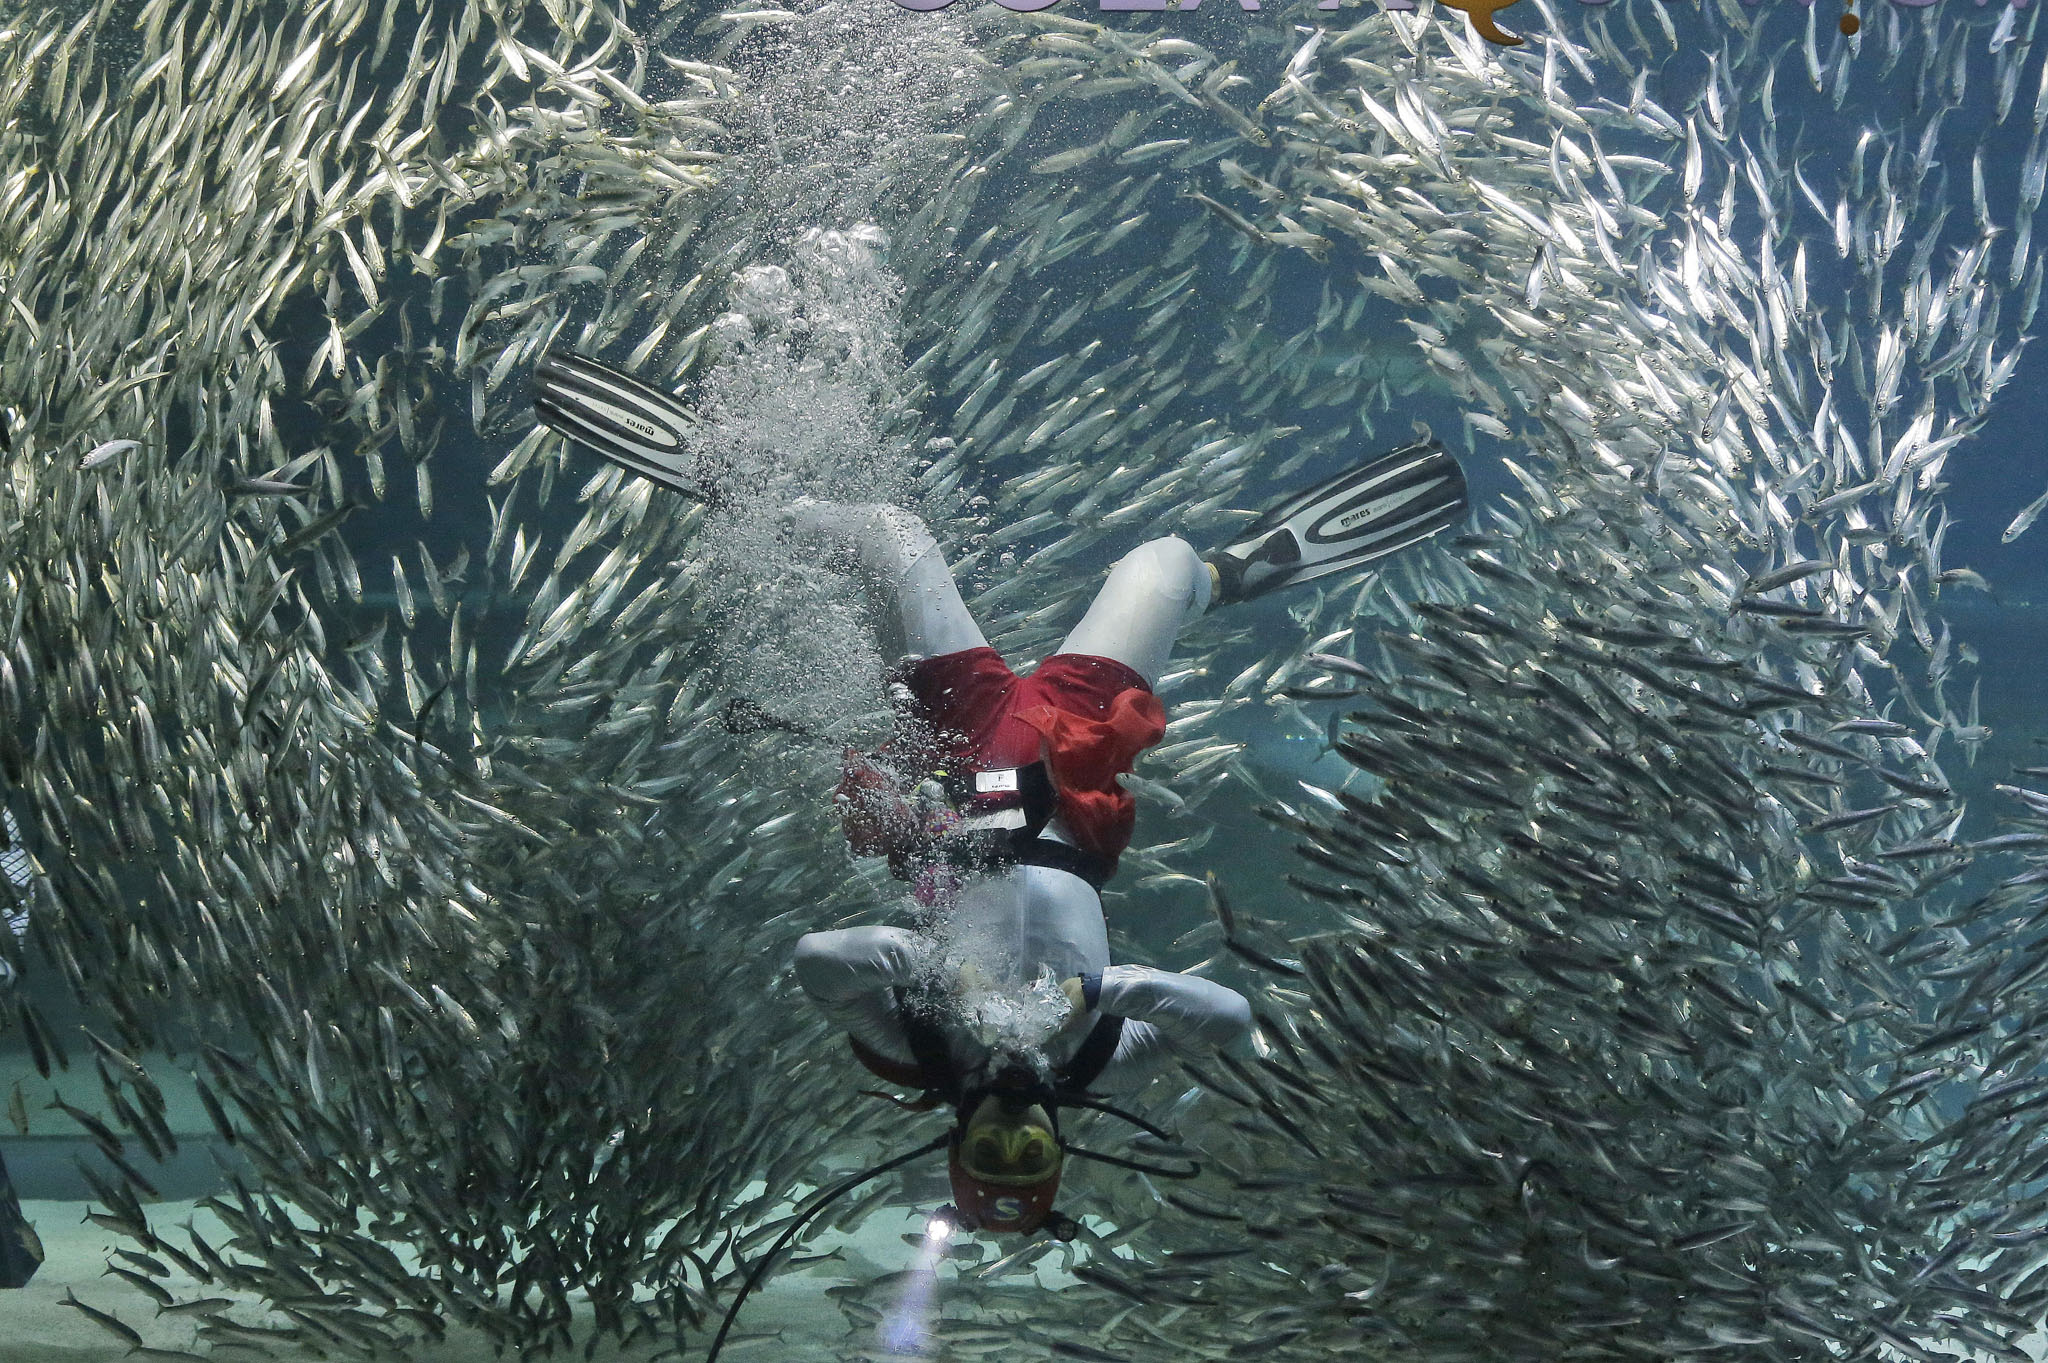 A diver performs with sardines as part of the summer events at the Coex Aquarium in Seoul, South Korea. The aquarium features 40,000 sea creatures from over 600 different species.